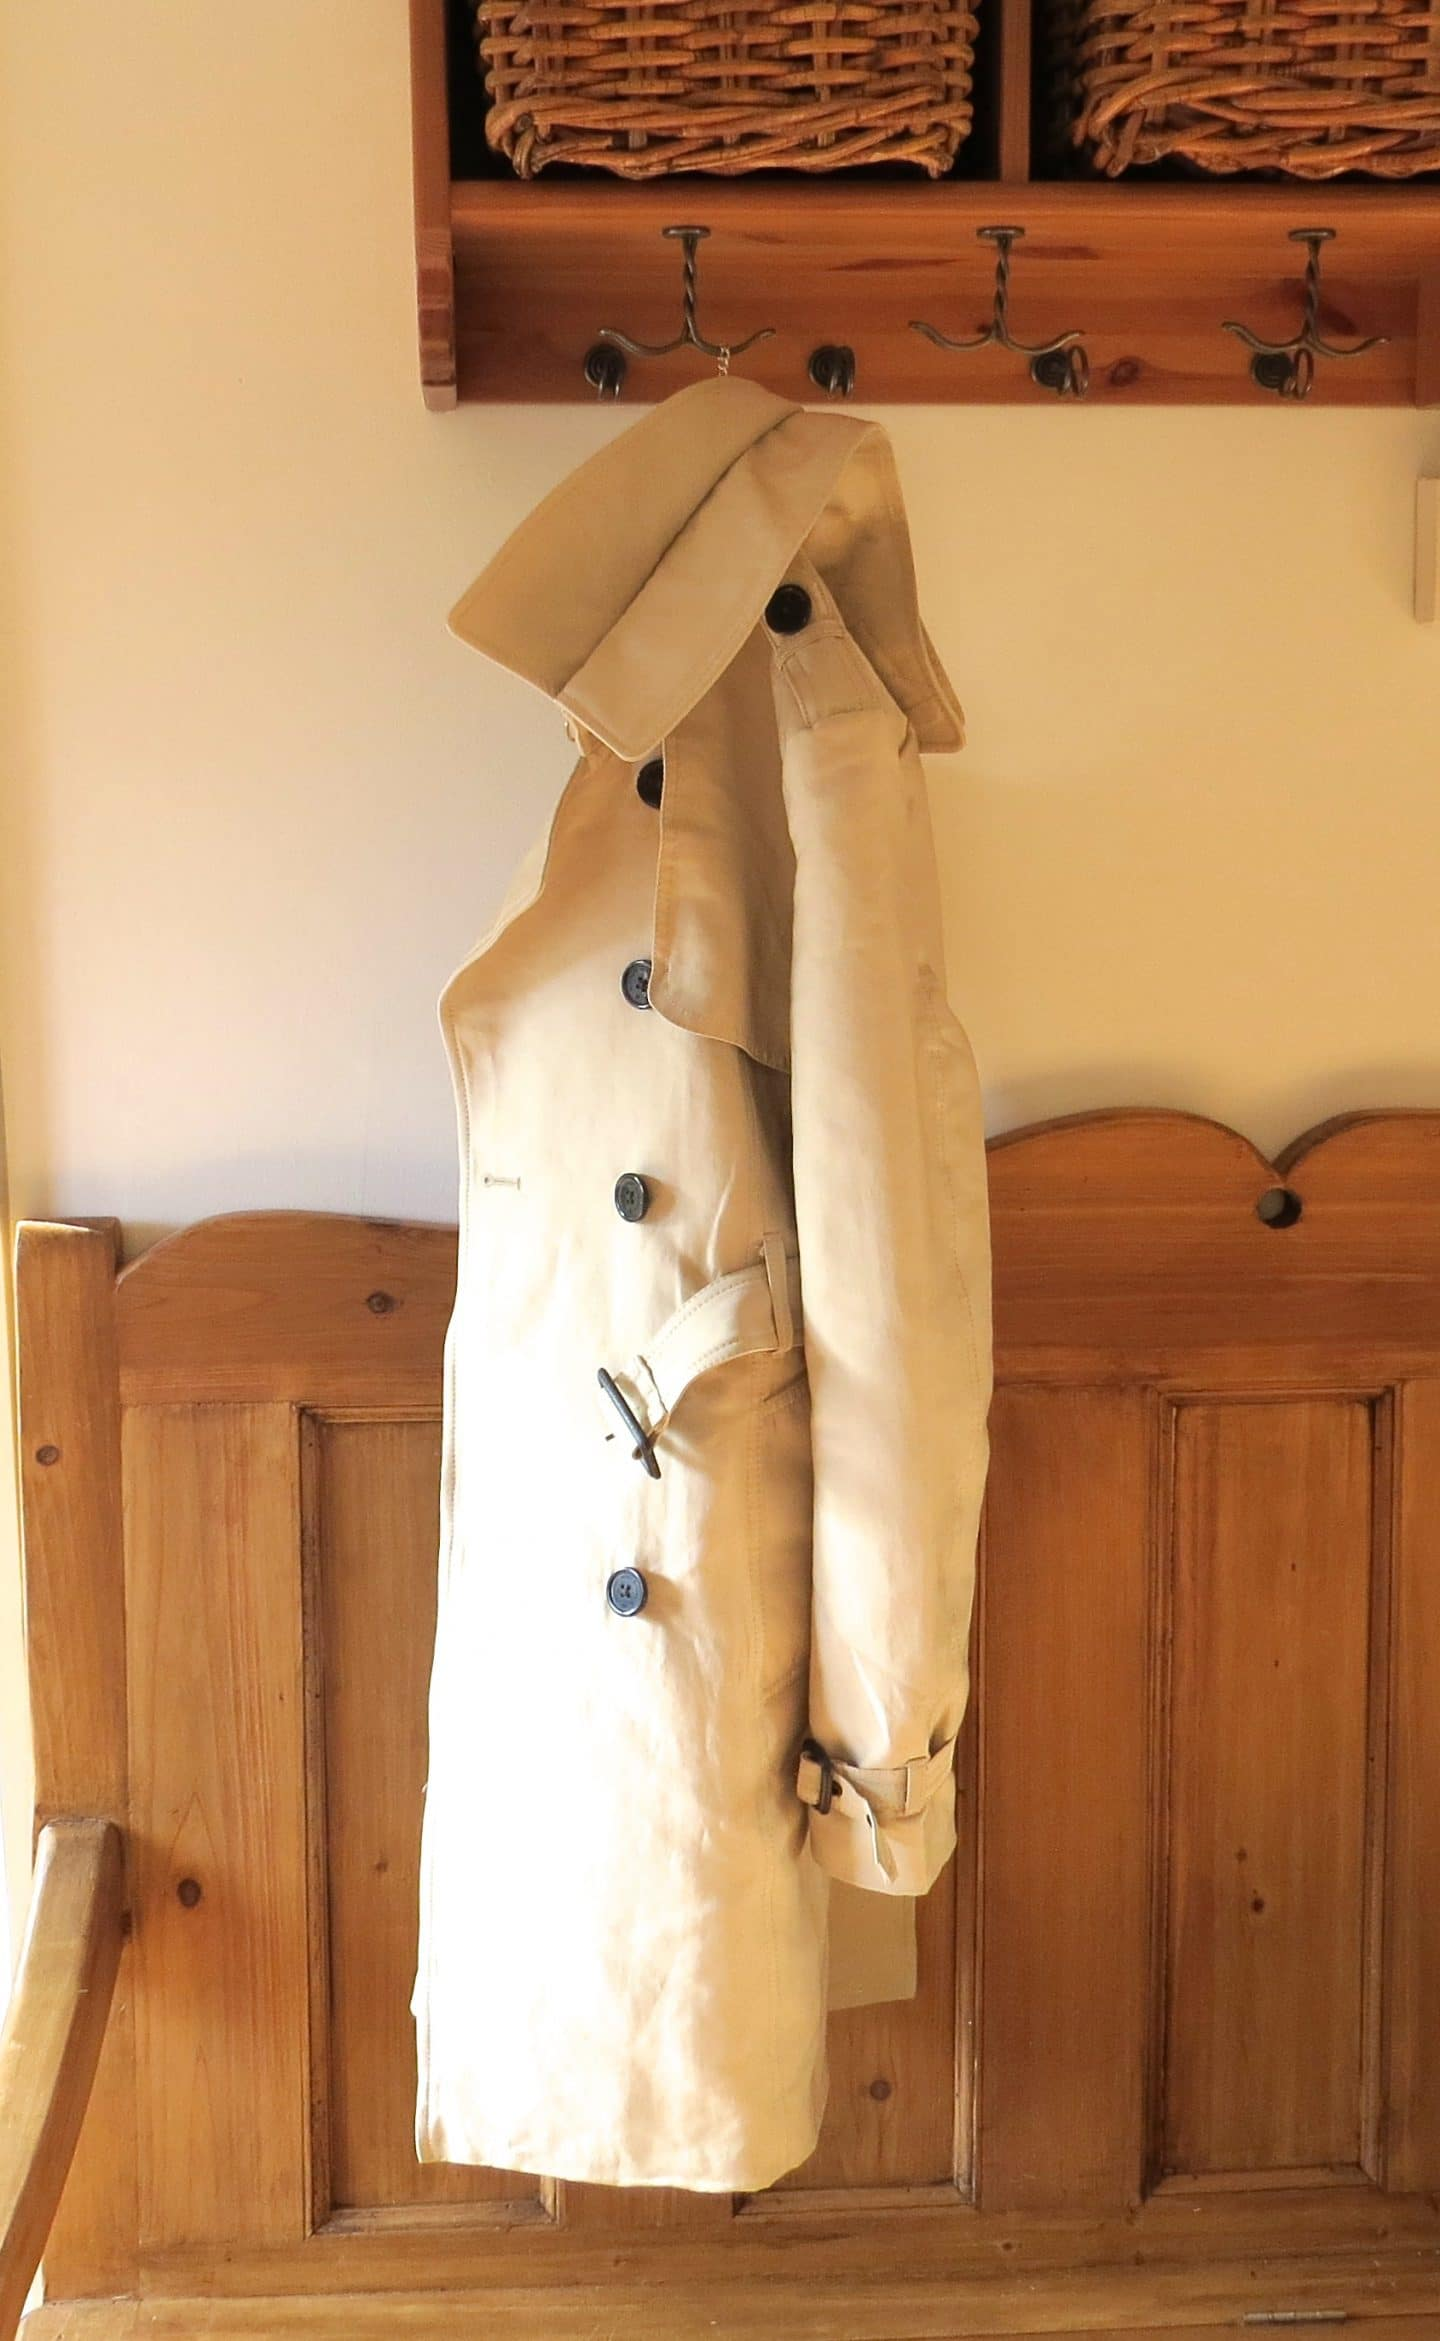 Super dry trench coat hanging up